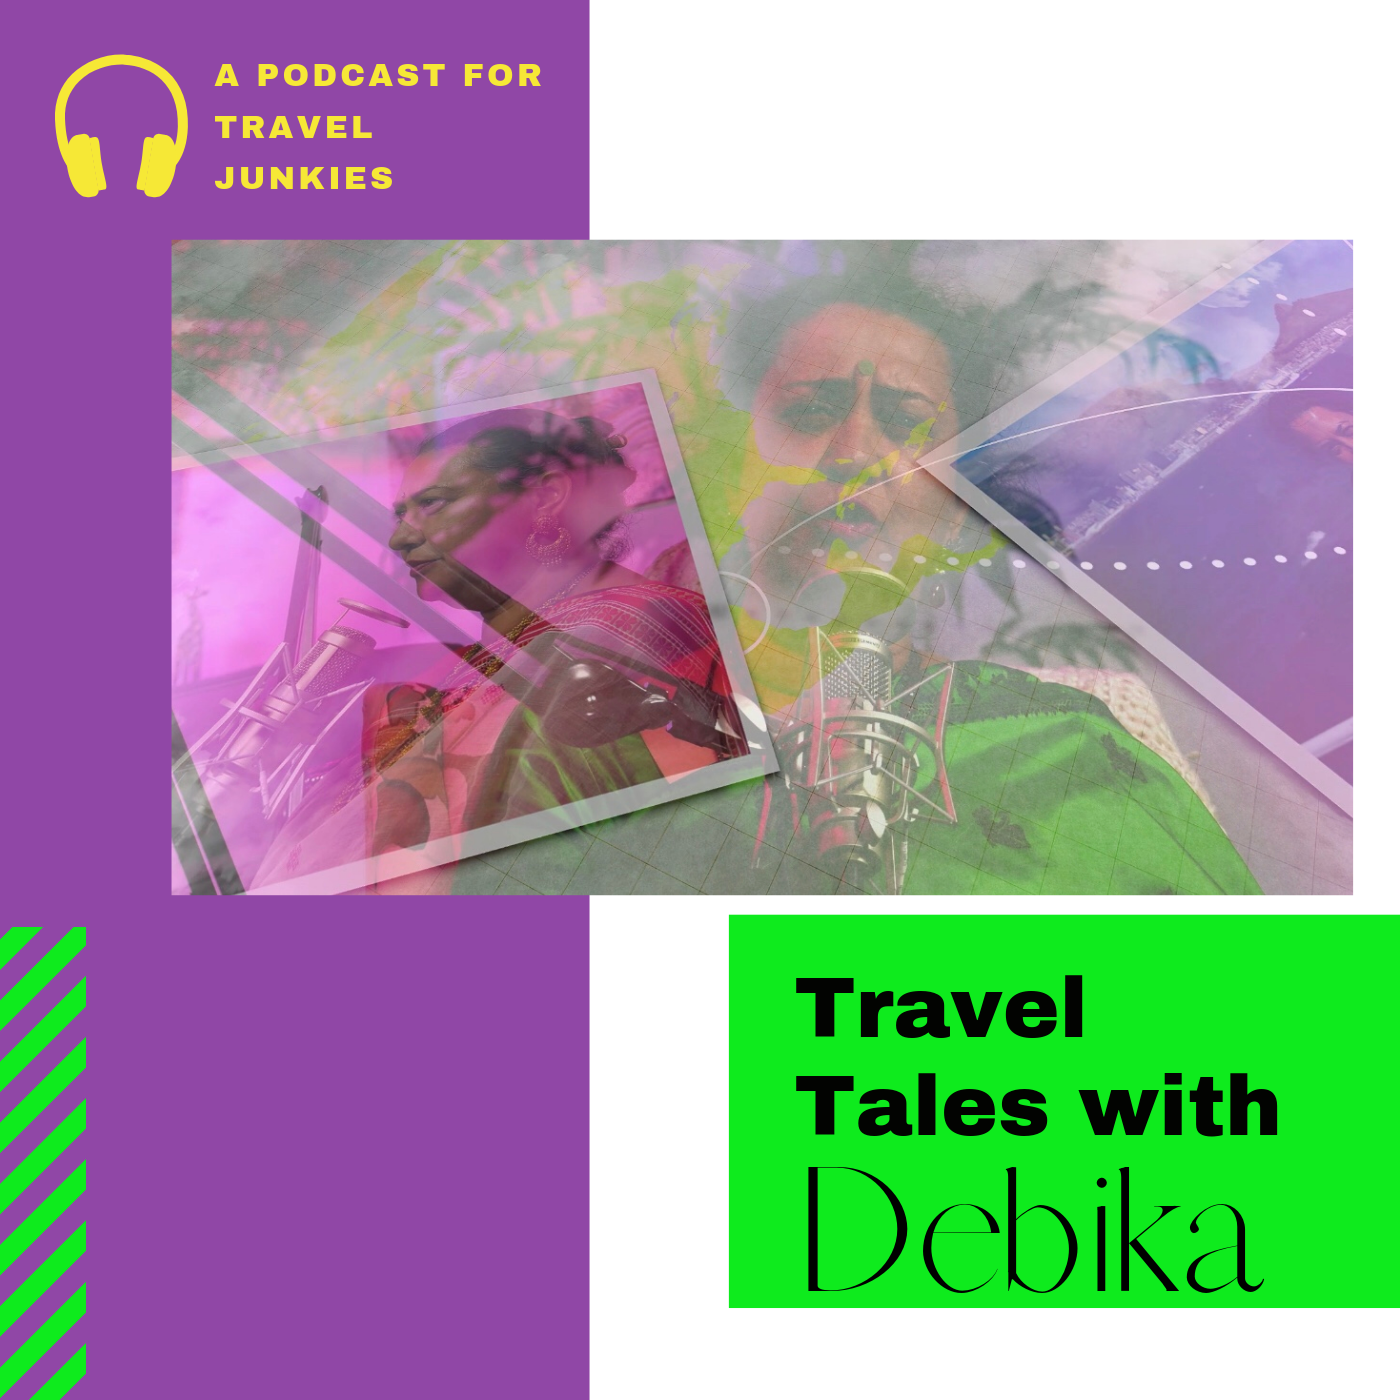 Travel Tales With Debika Podcast